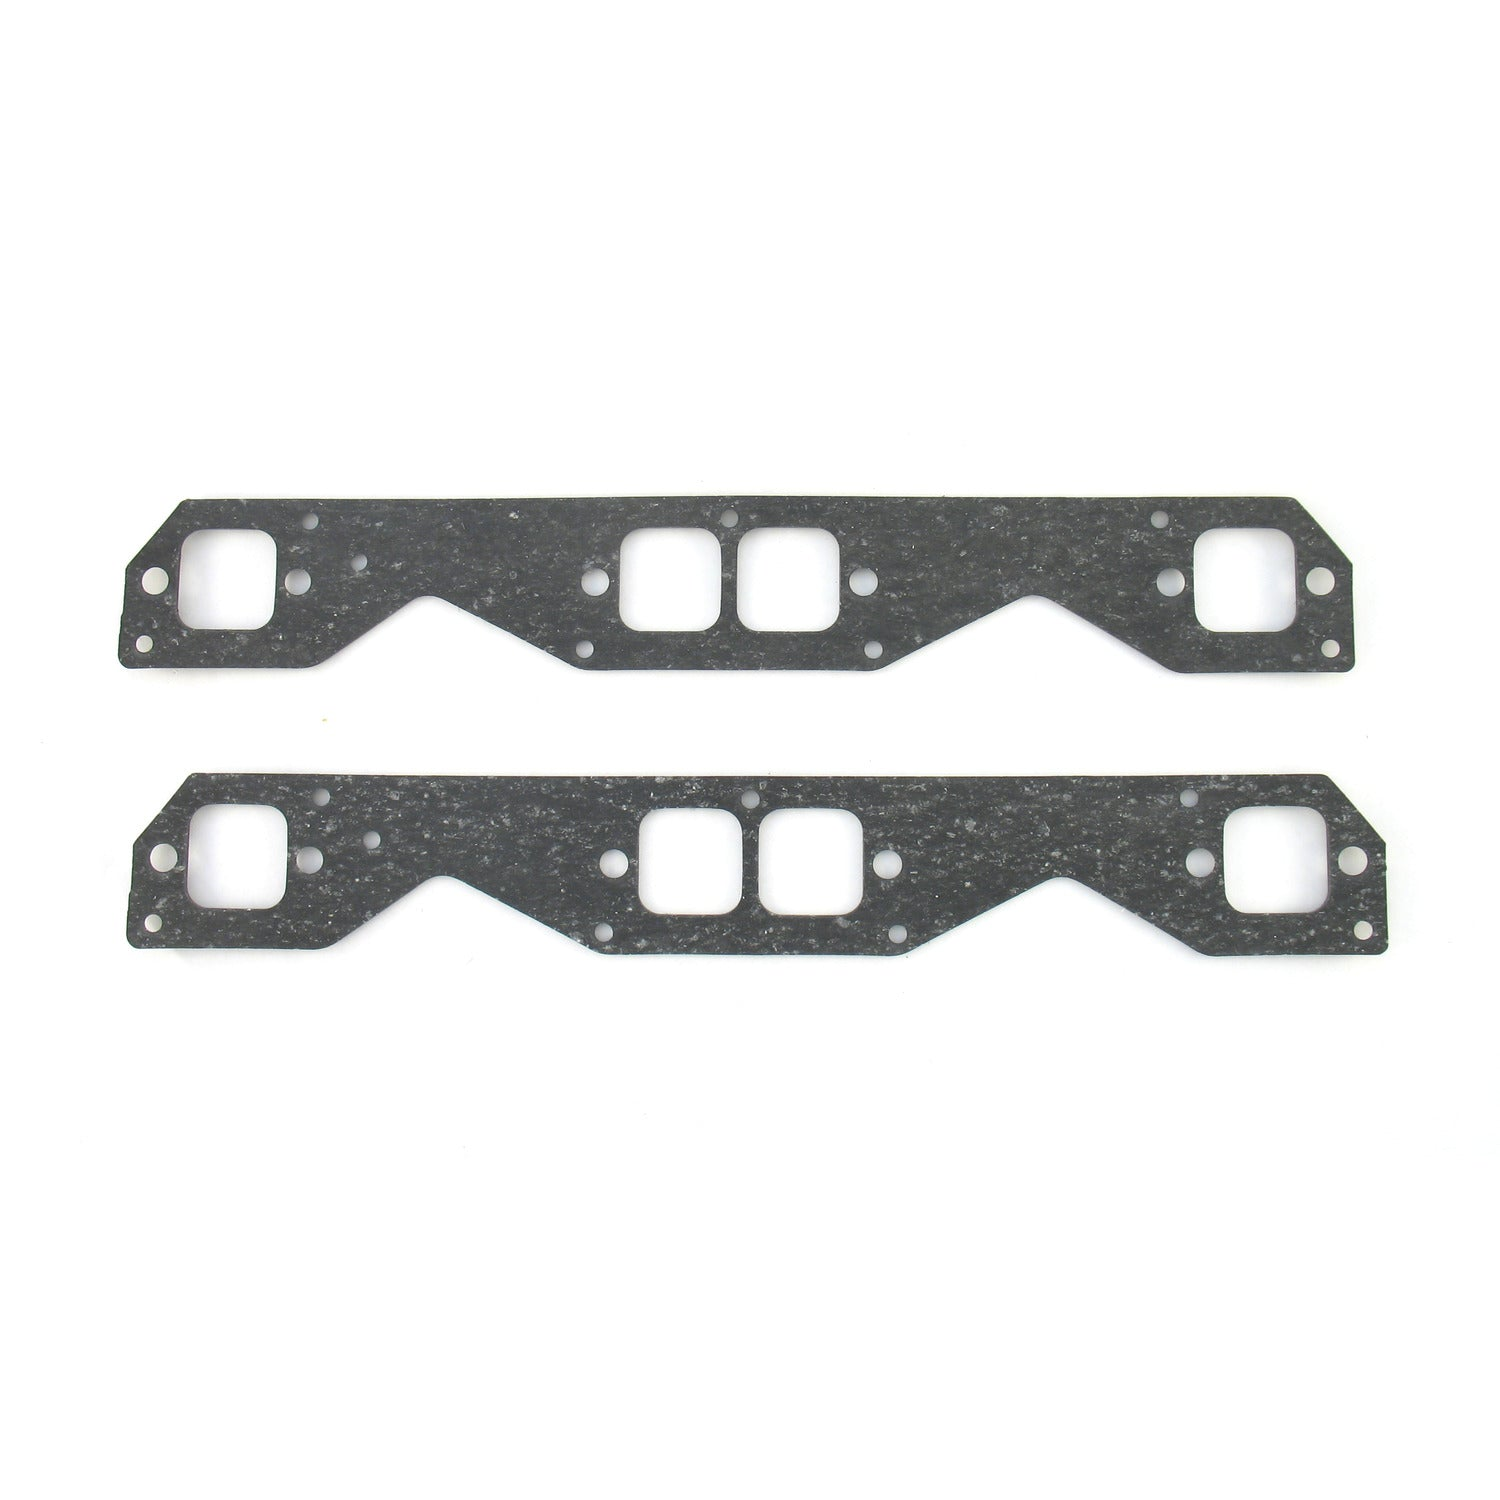 Doug's Headers HG9322 SB Chevrolet 283-400 (inner gaskets)  Header Flange Gaskets